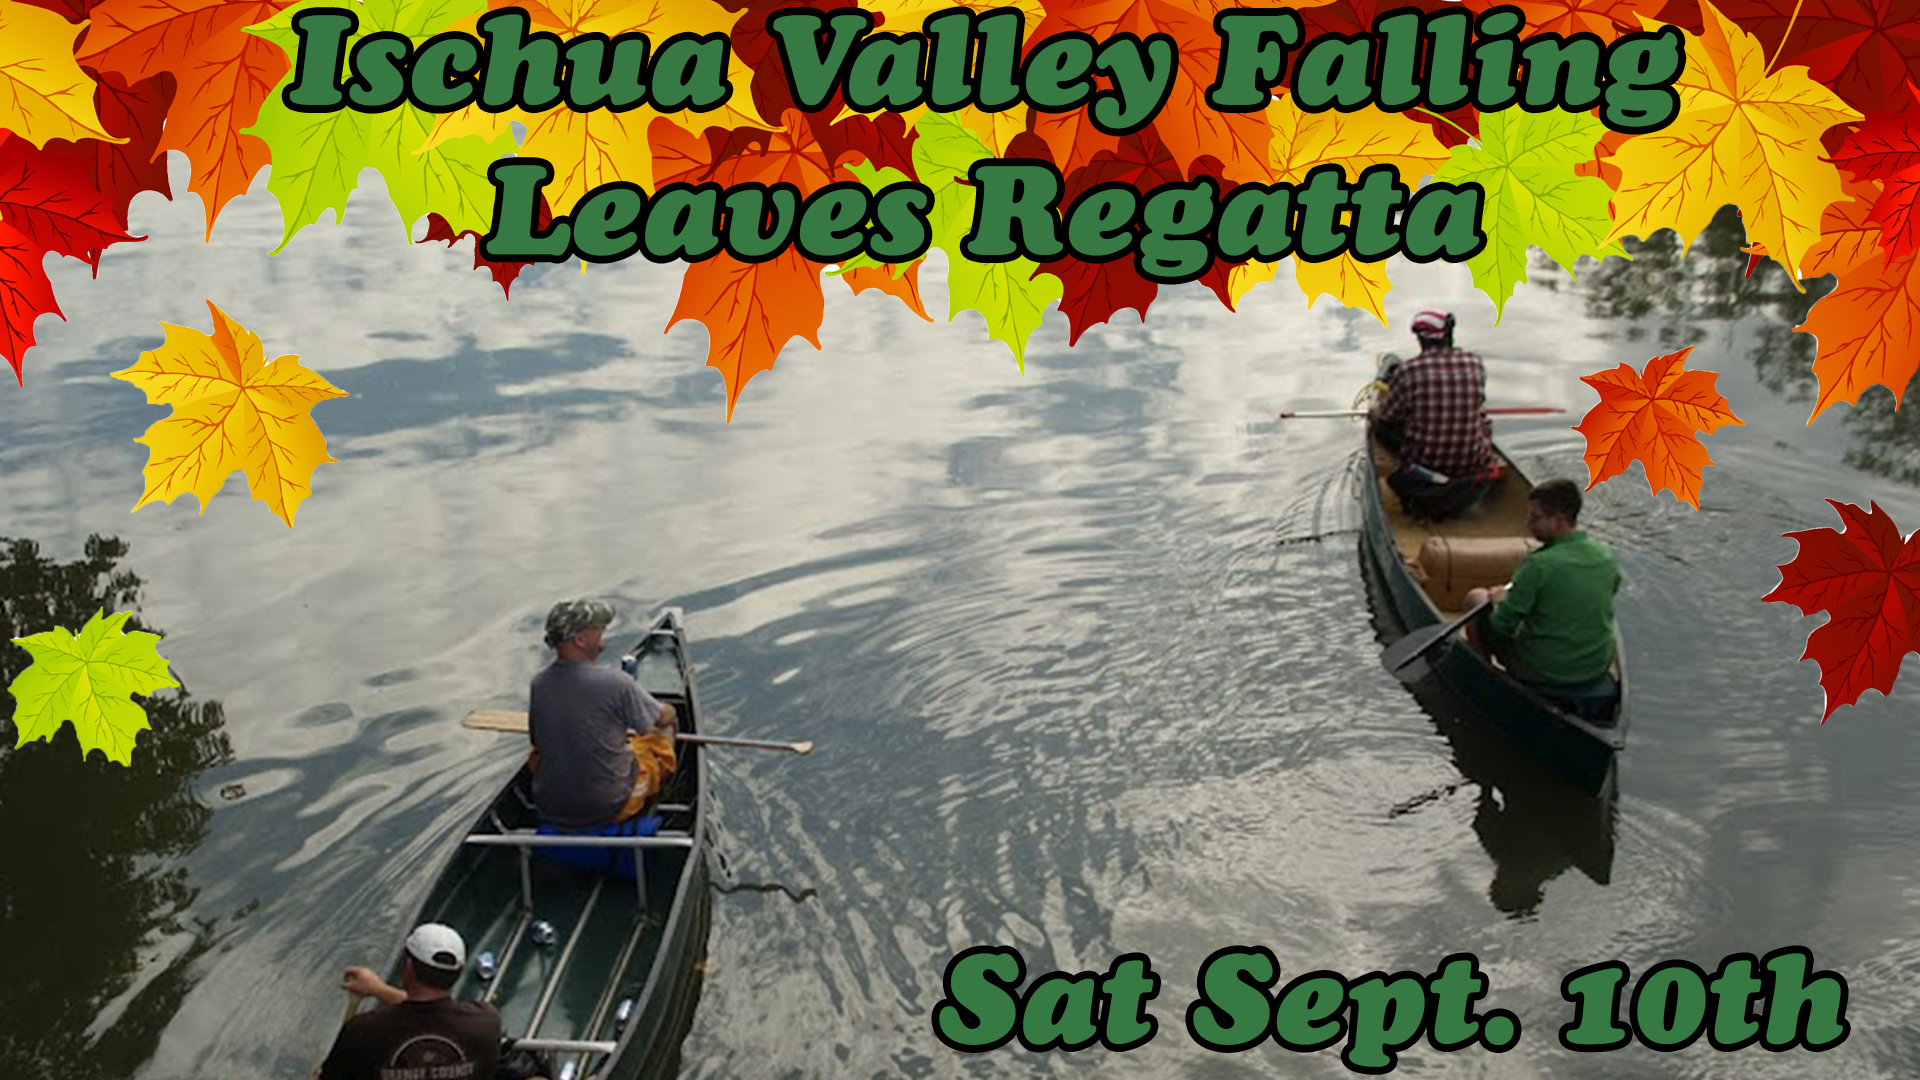 Ischua Valley Falling Leaves Regatta